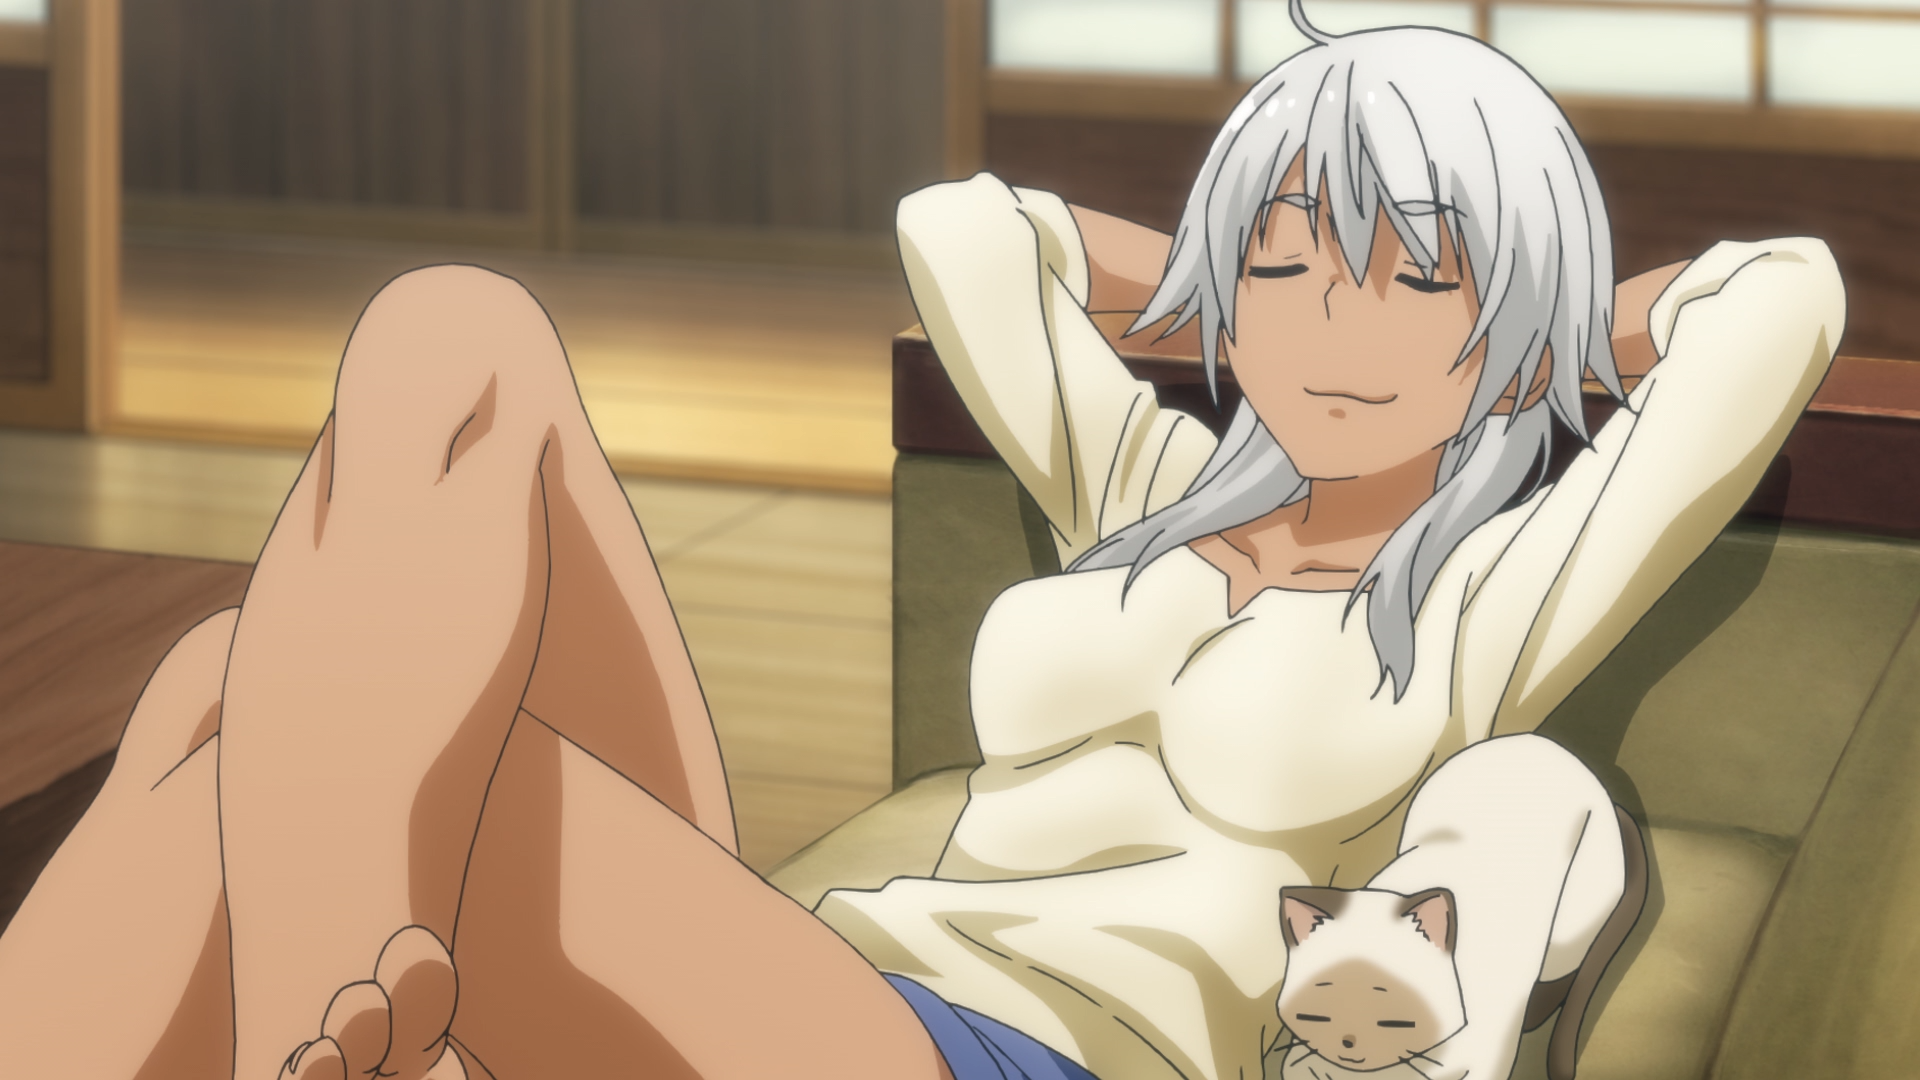 Akane Kowata and her familiar, Kenny, loaf on the couch in a scene from the Flying Witch TV anime.